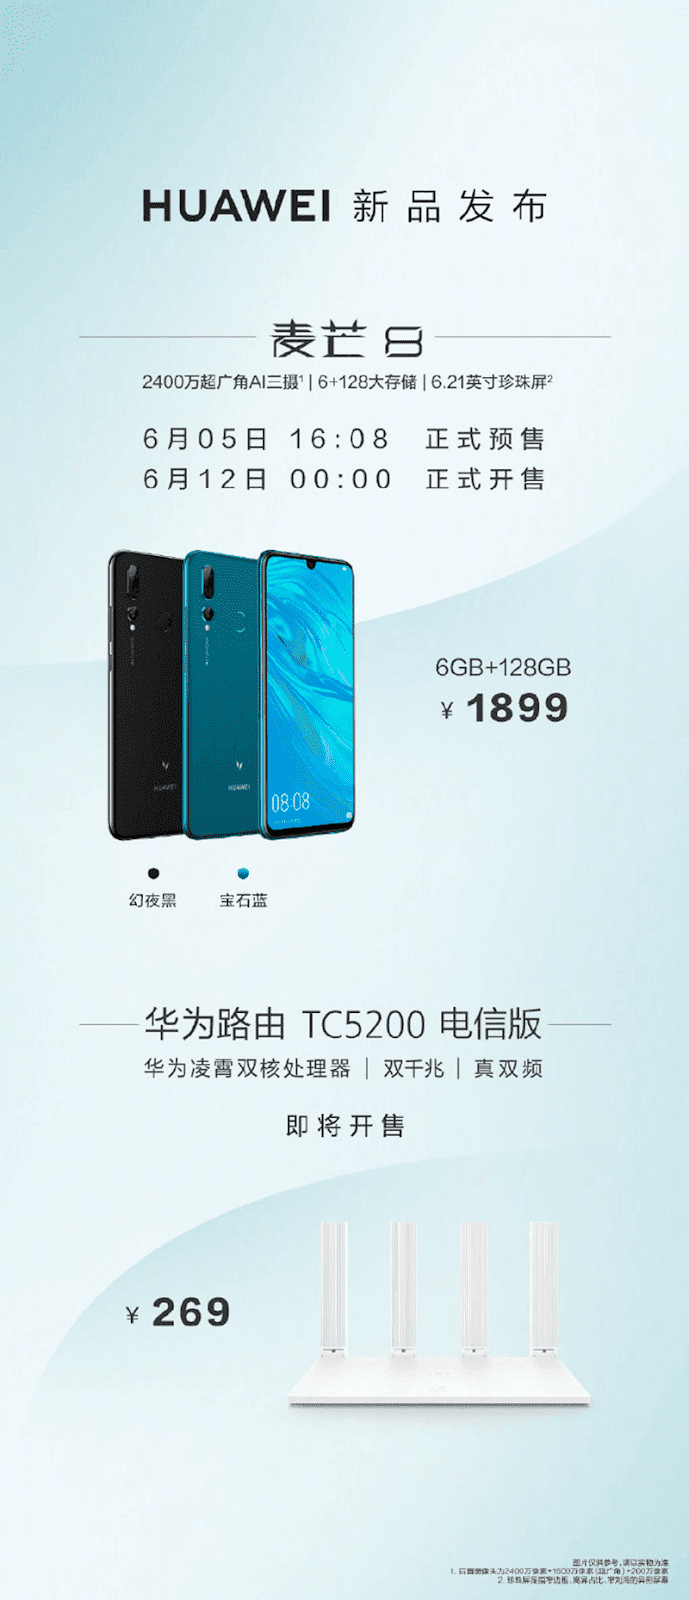 Huawei Maimang 8 phone and TC5200 router announced